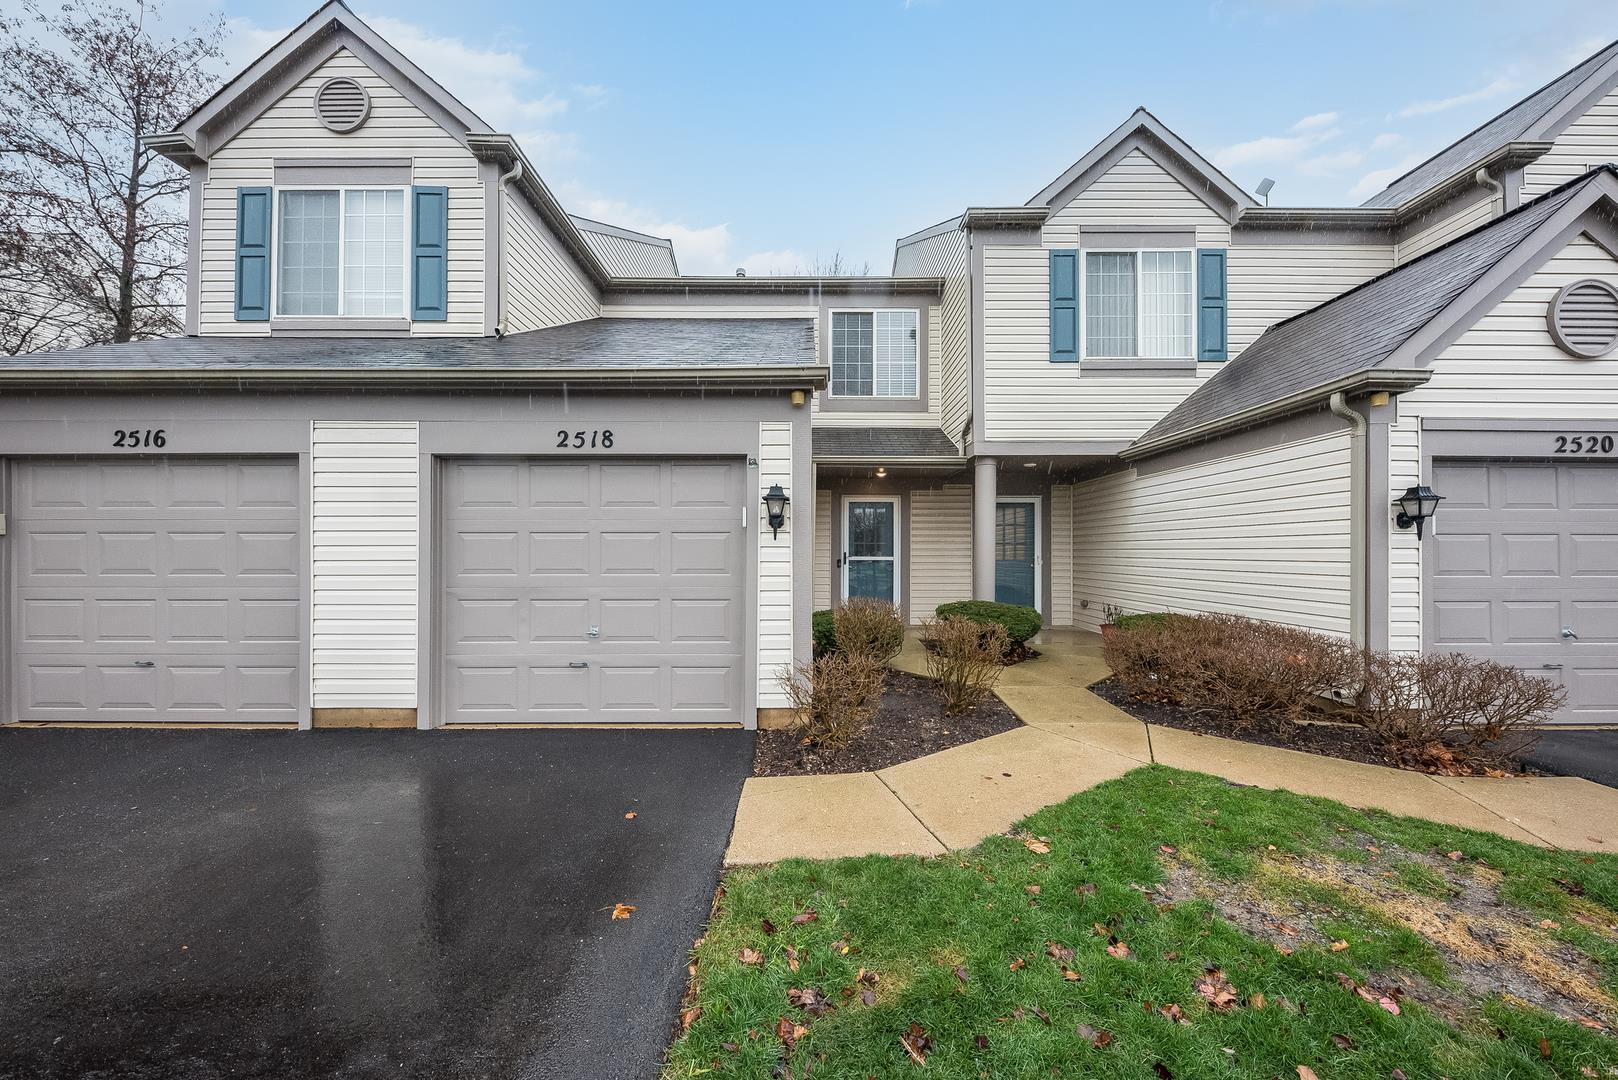 2518 CARROLWOOD Road, Naperville, IL 60540 - #: 10953933